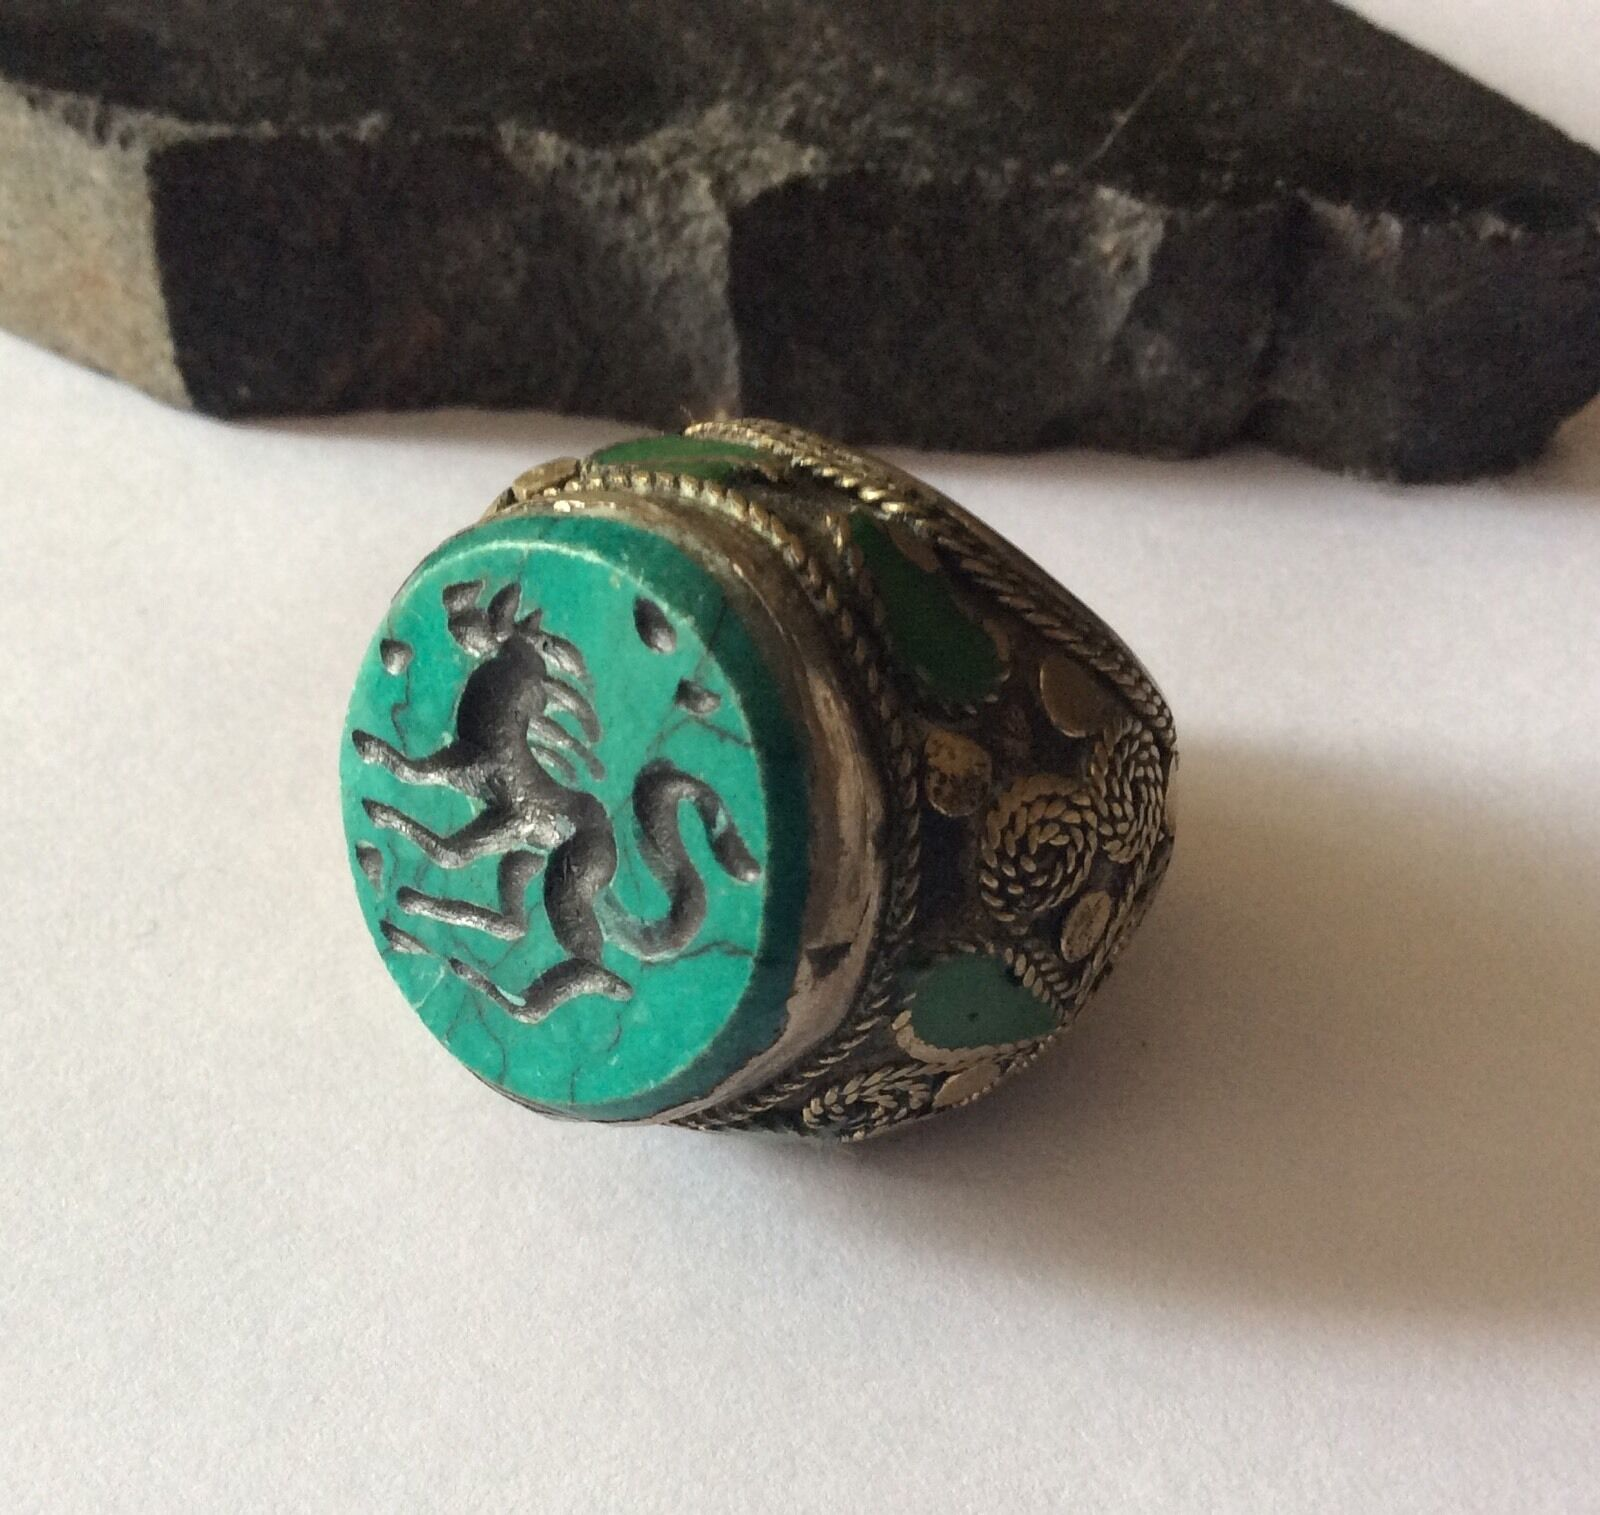 Men's Engraved Stone Ring Malachite Islamic Afghan Persian Animal Intaglio 9.5